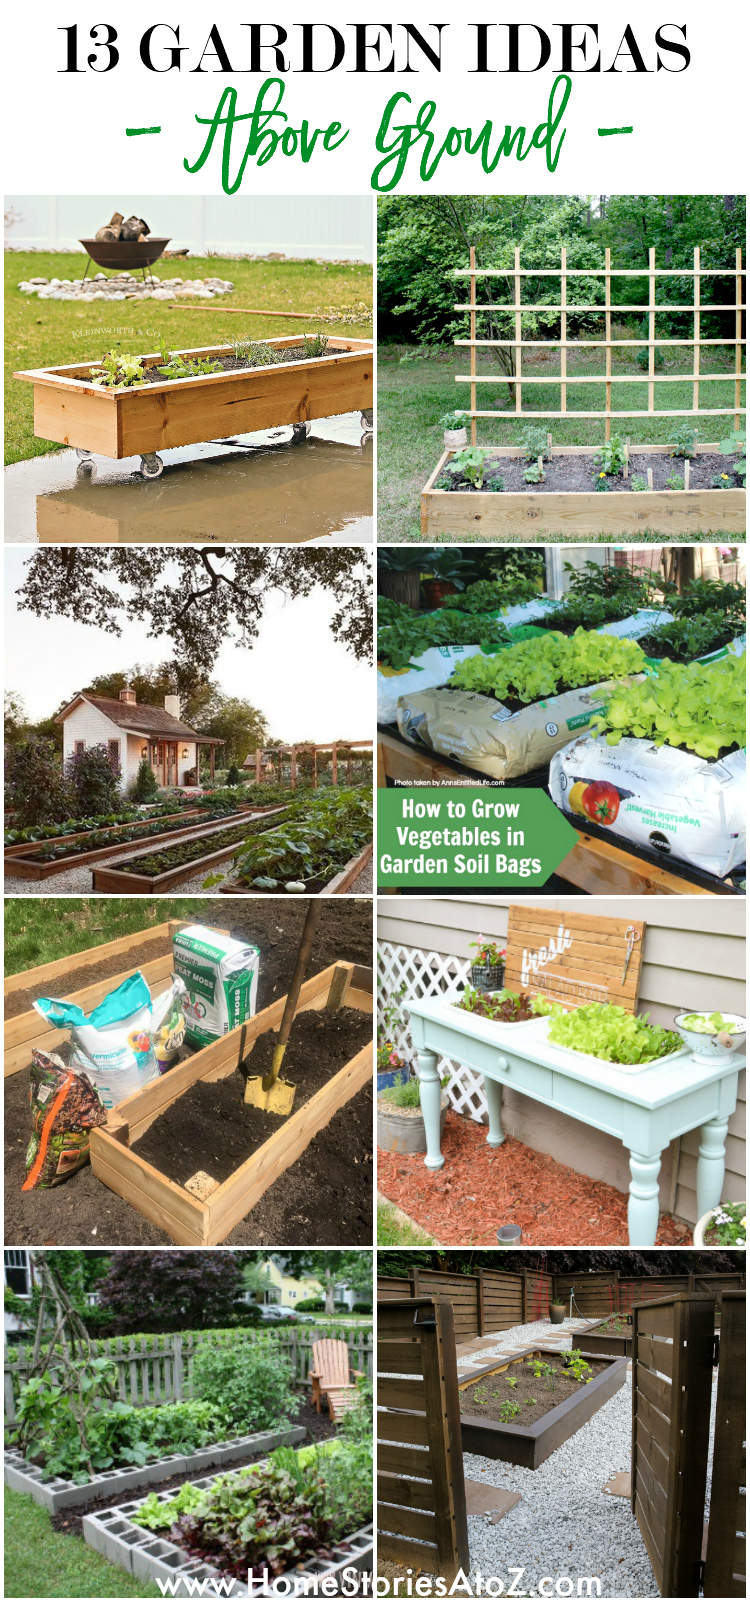 13 Raised Garden Bed Projects and Ideas on